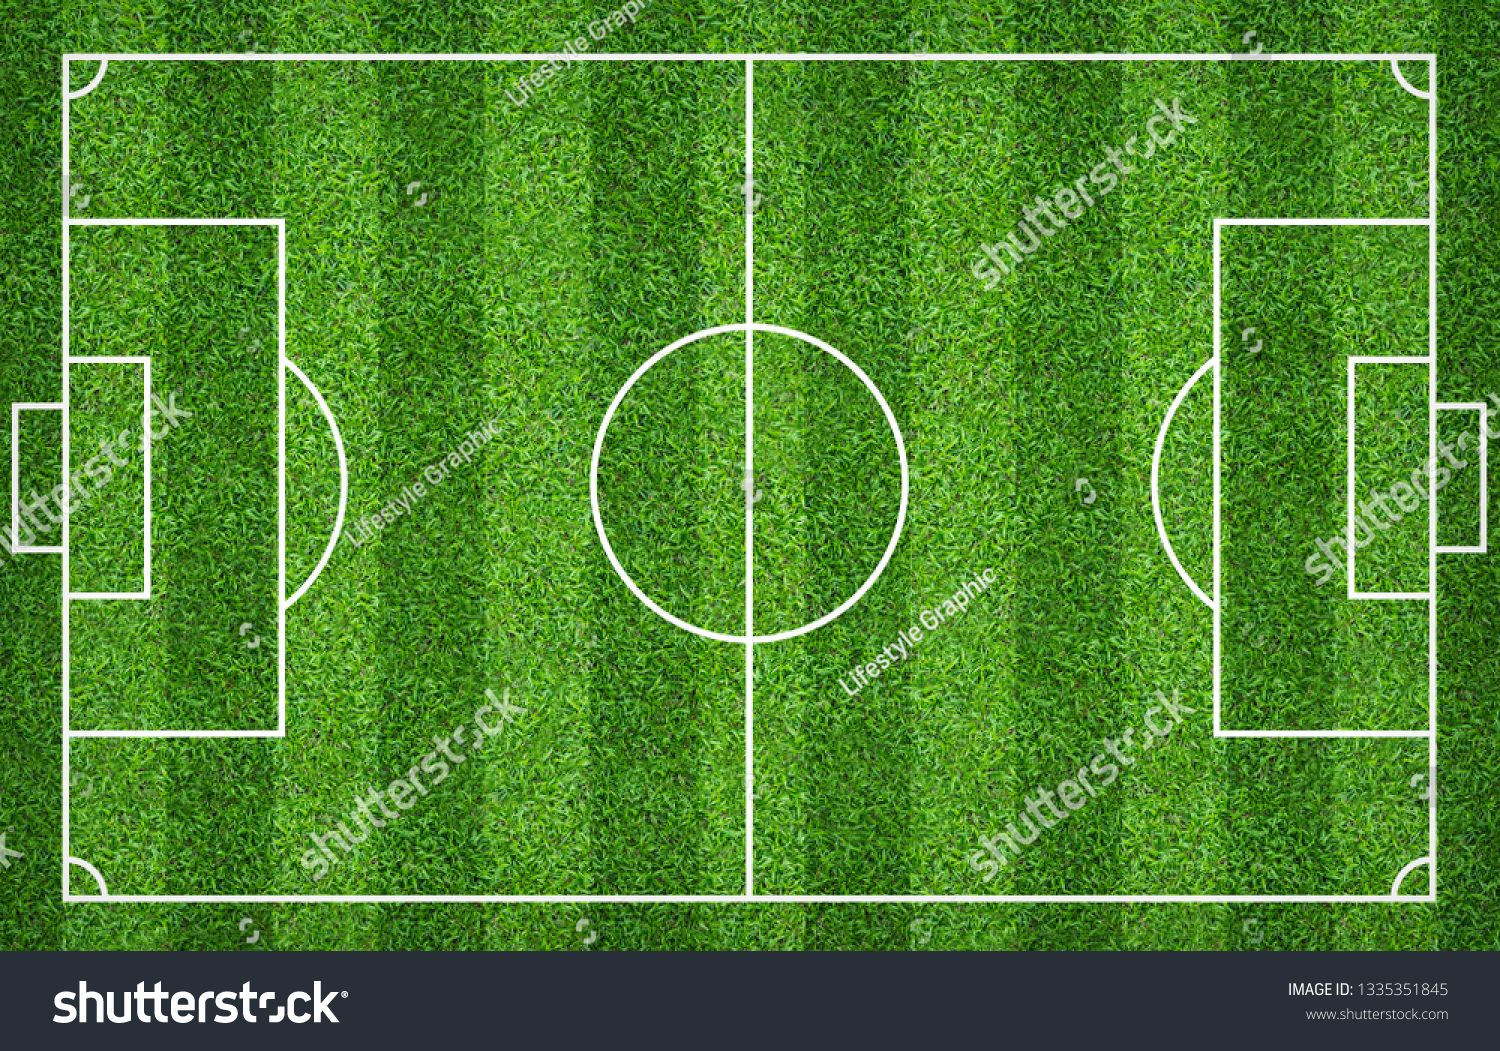 Football Field Or Soccer Field For Background Green Lawn Court For Create Sport Game Ad Affiliate Background Green Soc Football Field Soccer Backgrounds Soccer